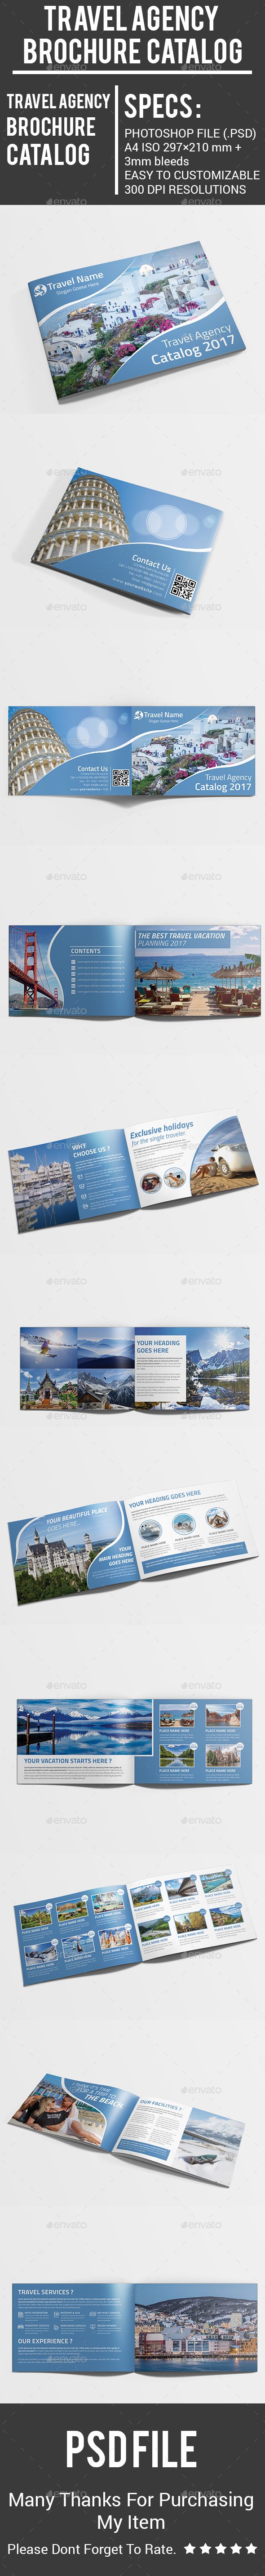 Travel Agency Brochure Catalog - Catalogs Brochures